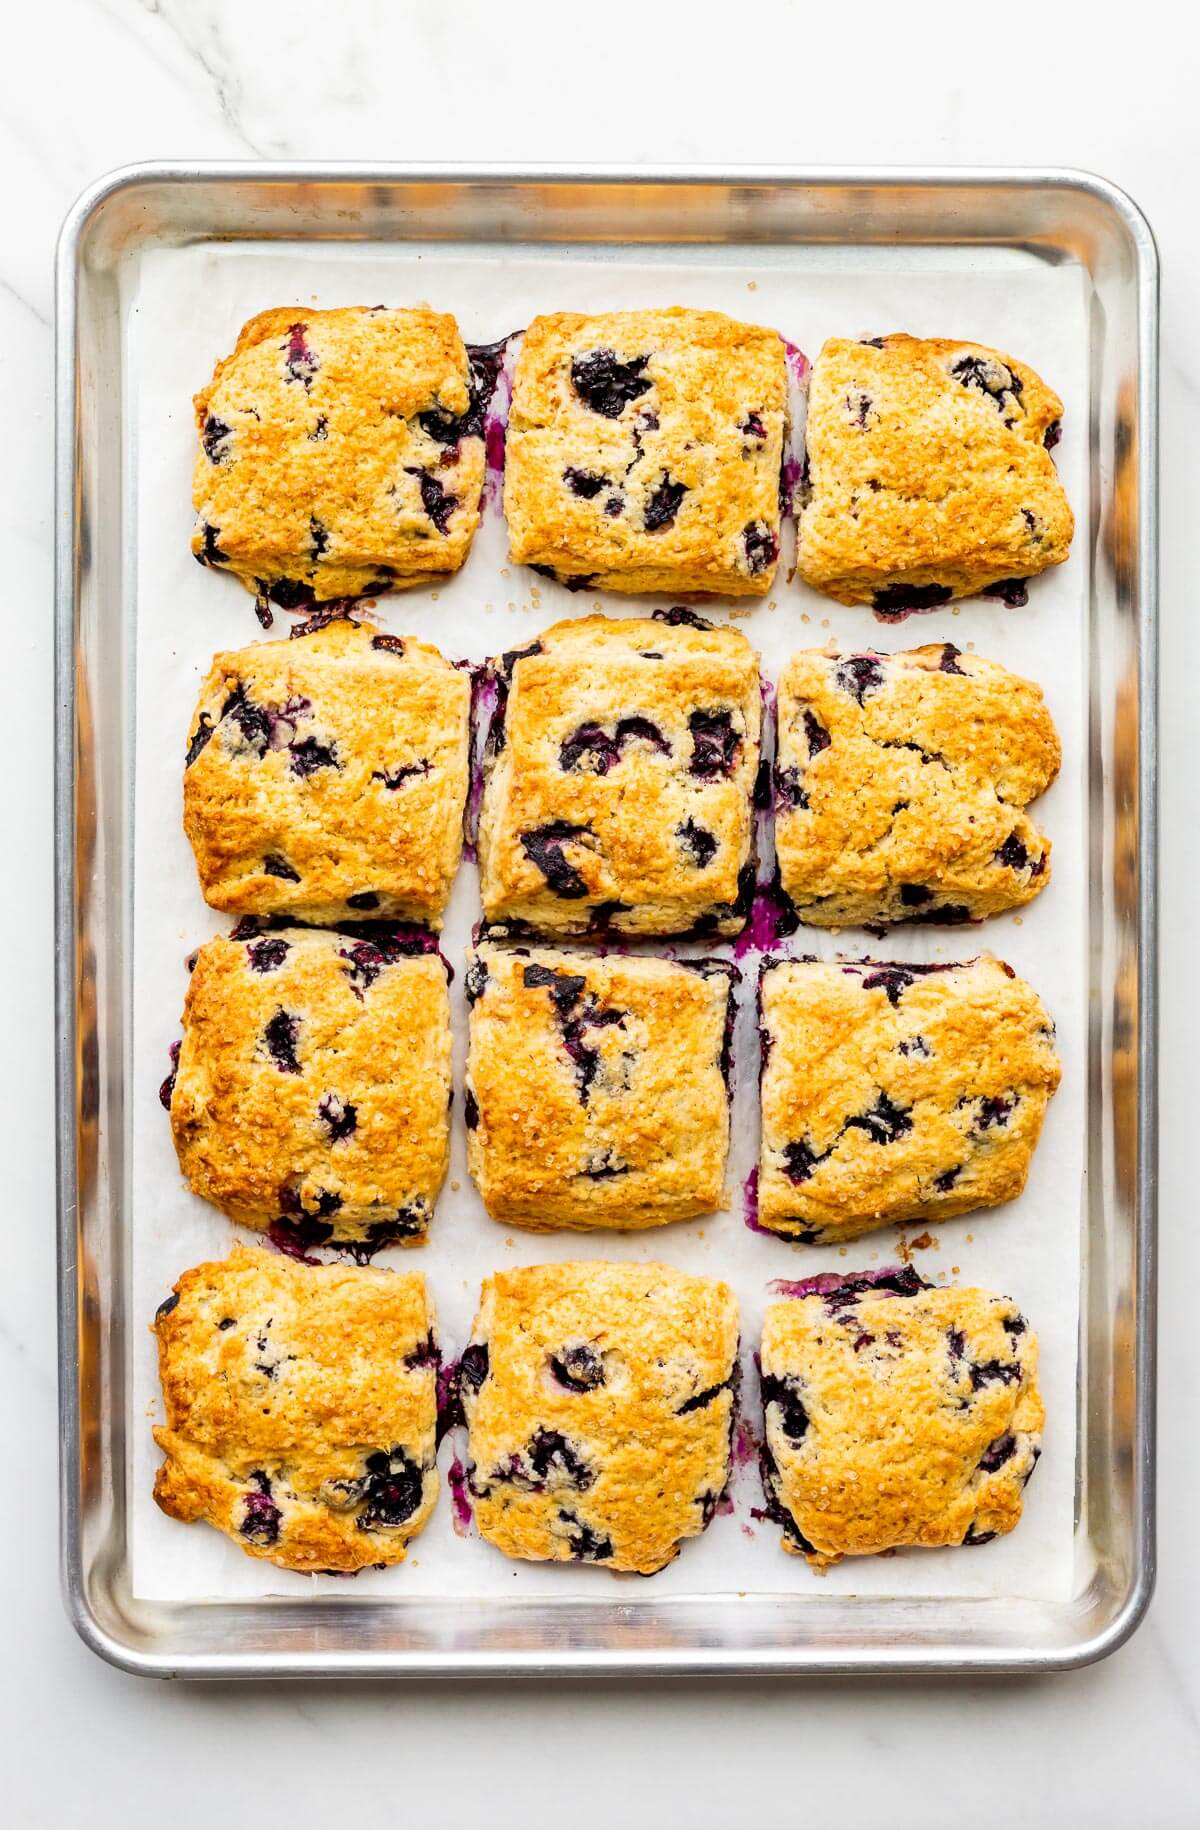 A sheet pan of freshly baked scones with blueberries.